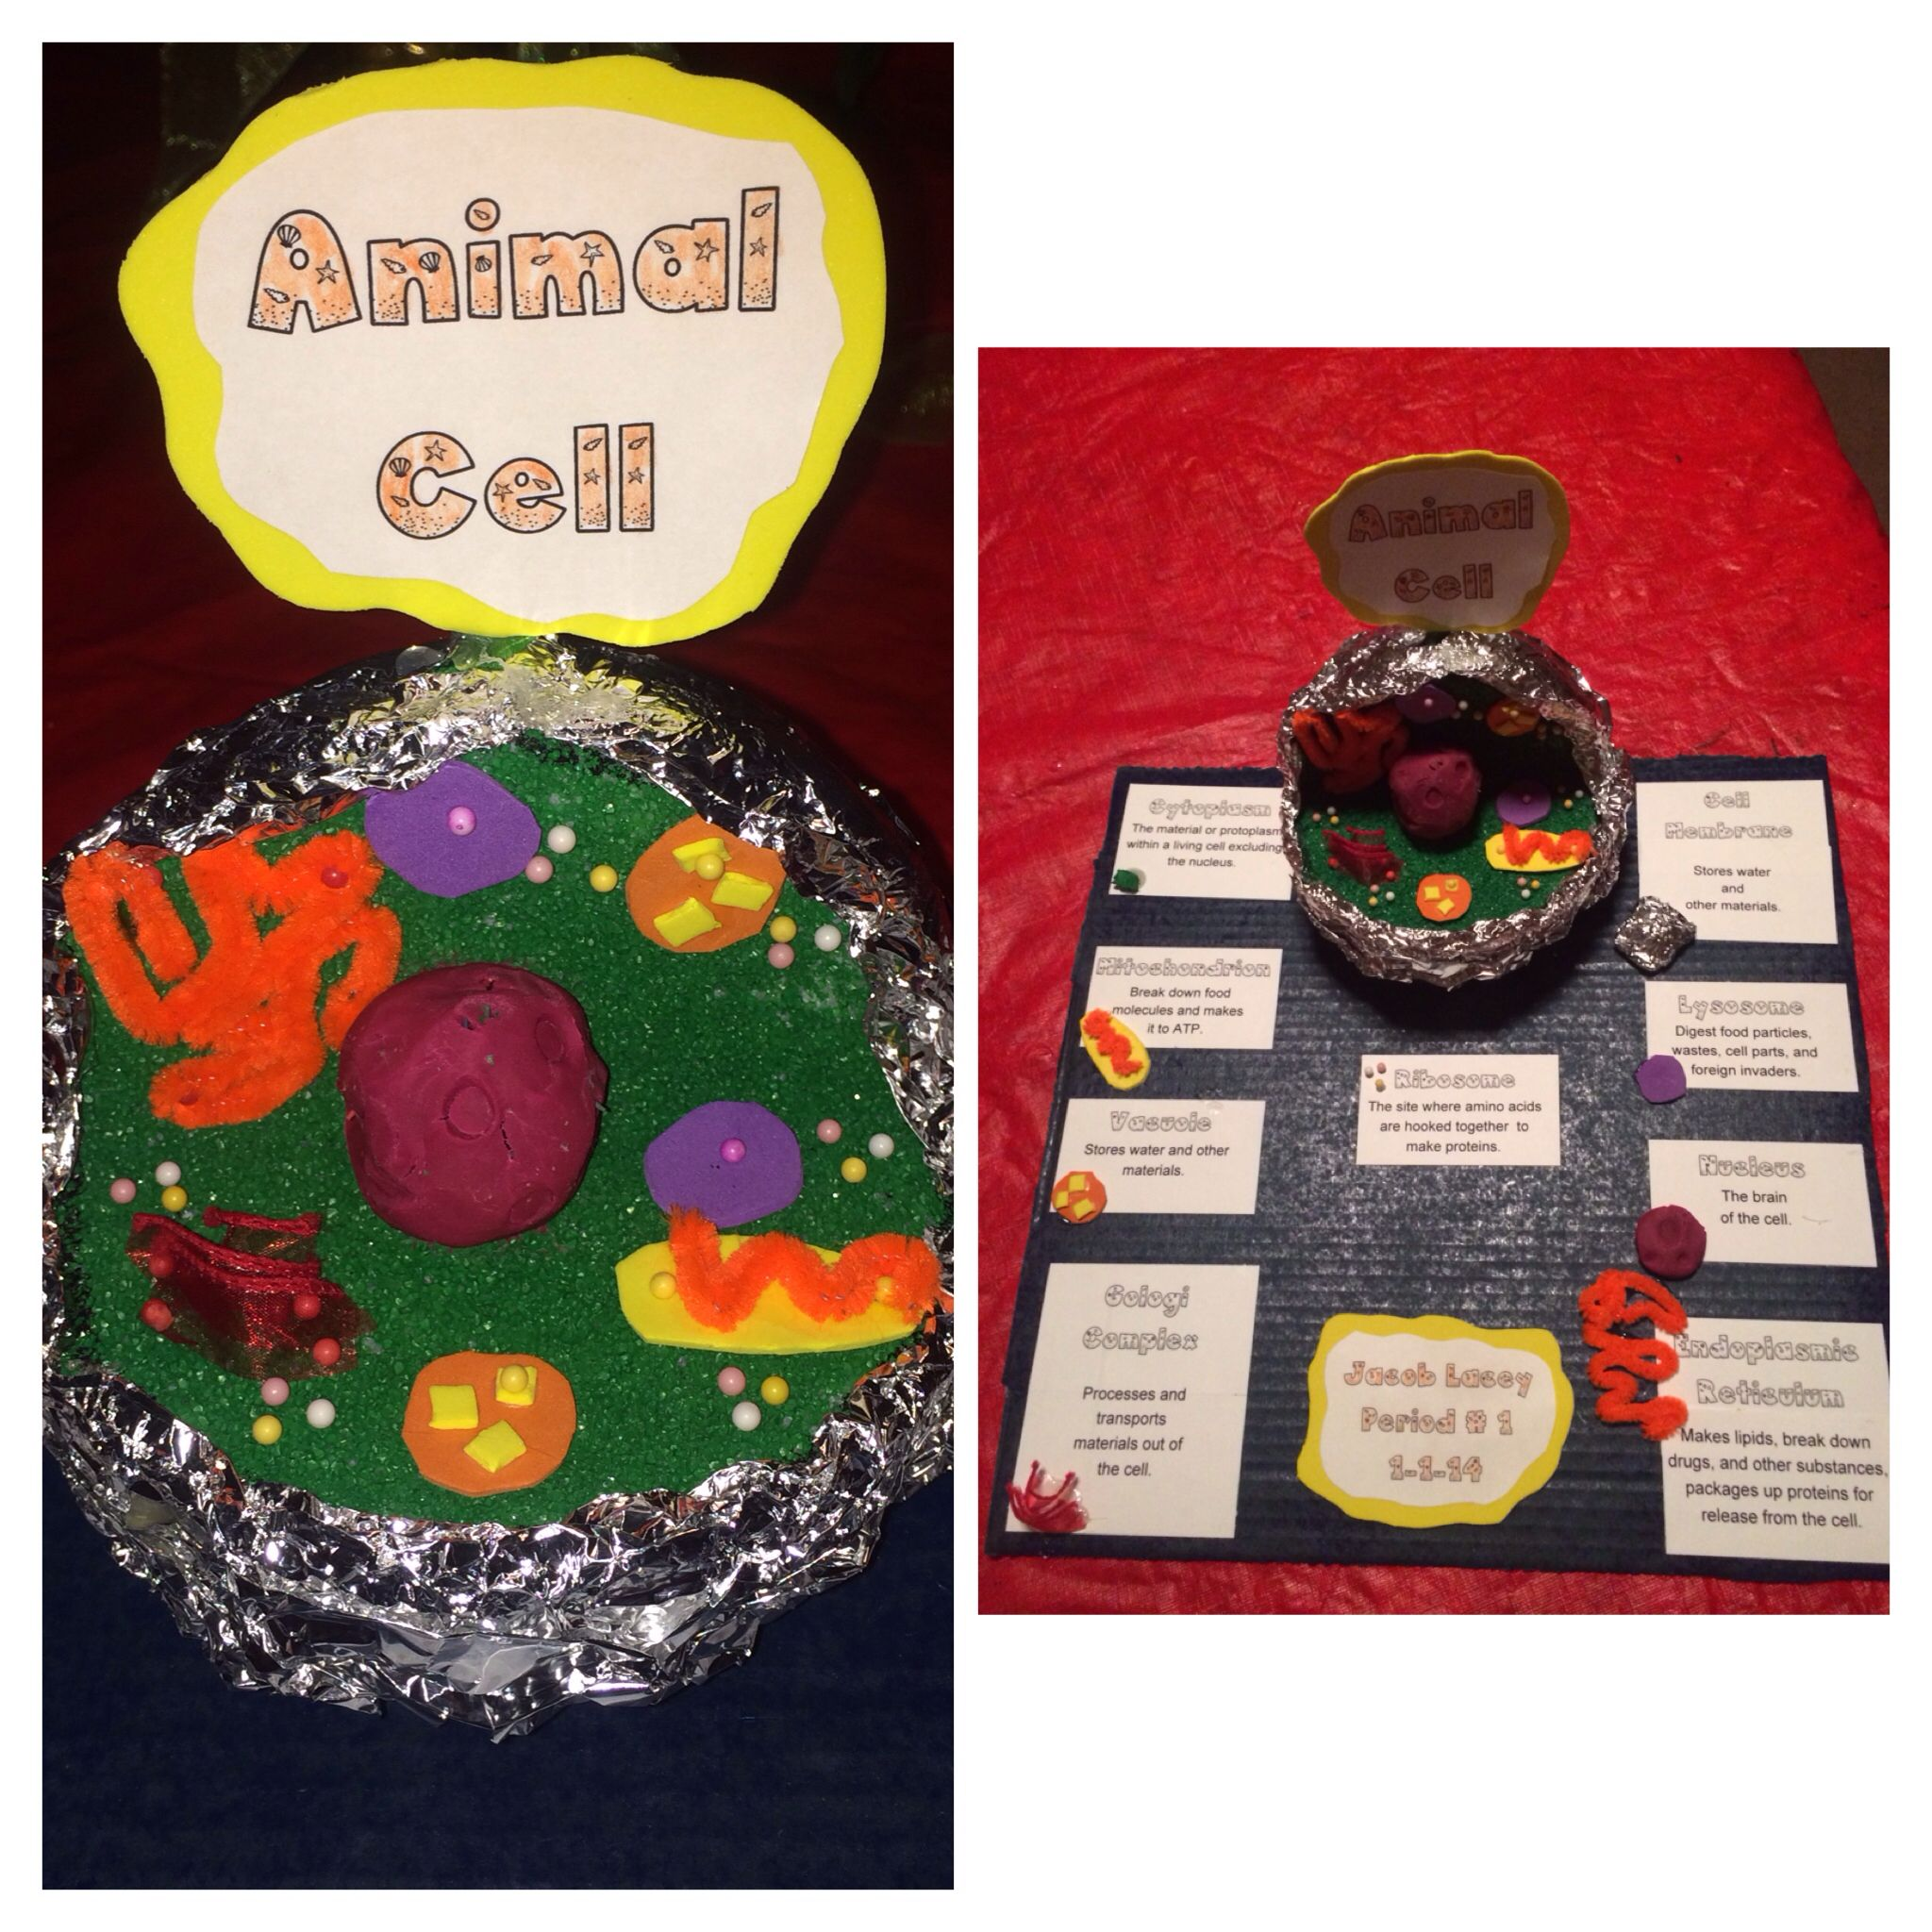 Jacob S 7th Grade Animal Cell Science Project